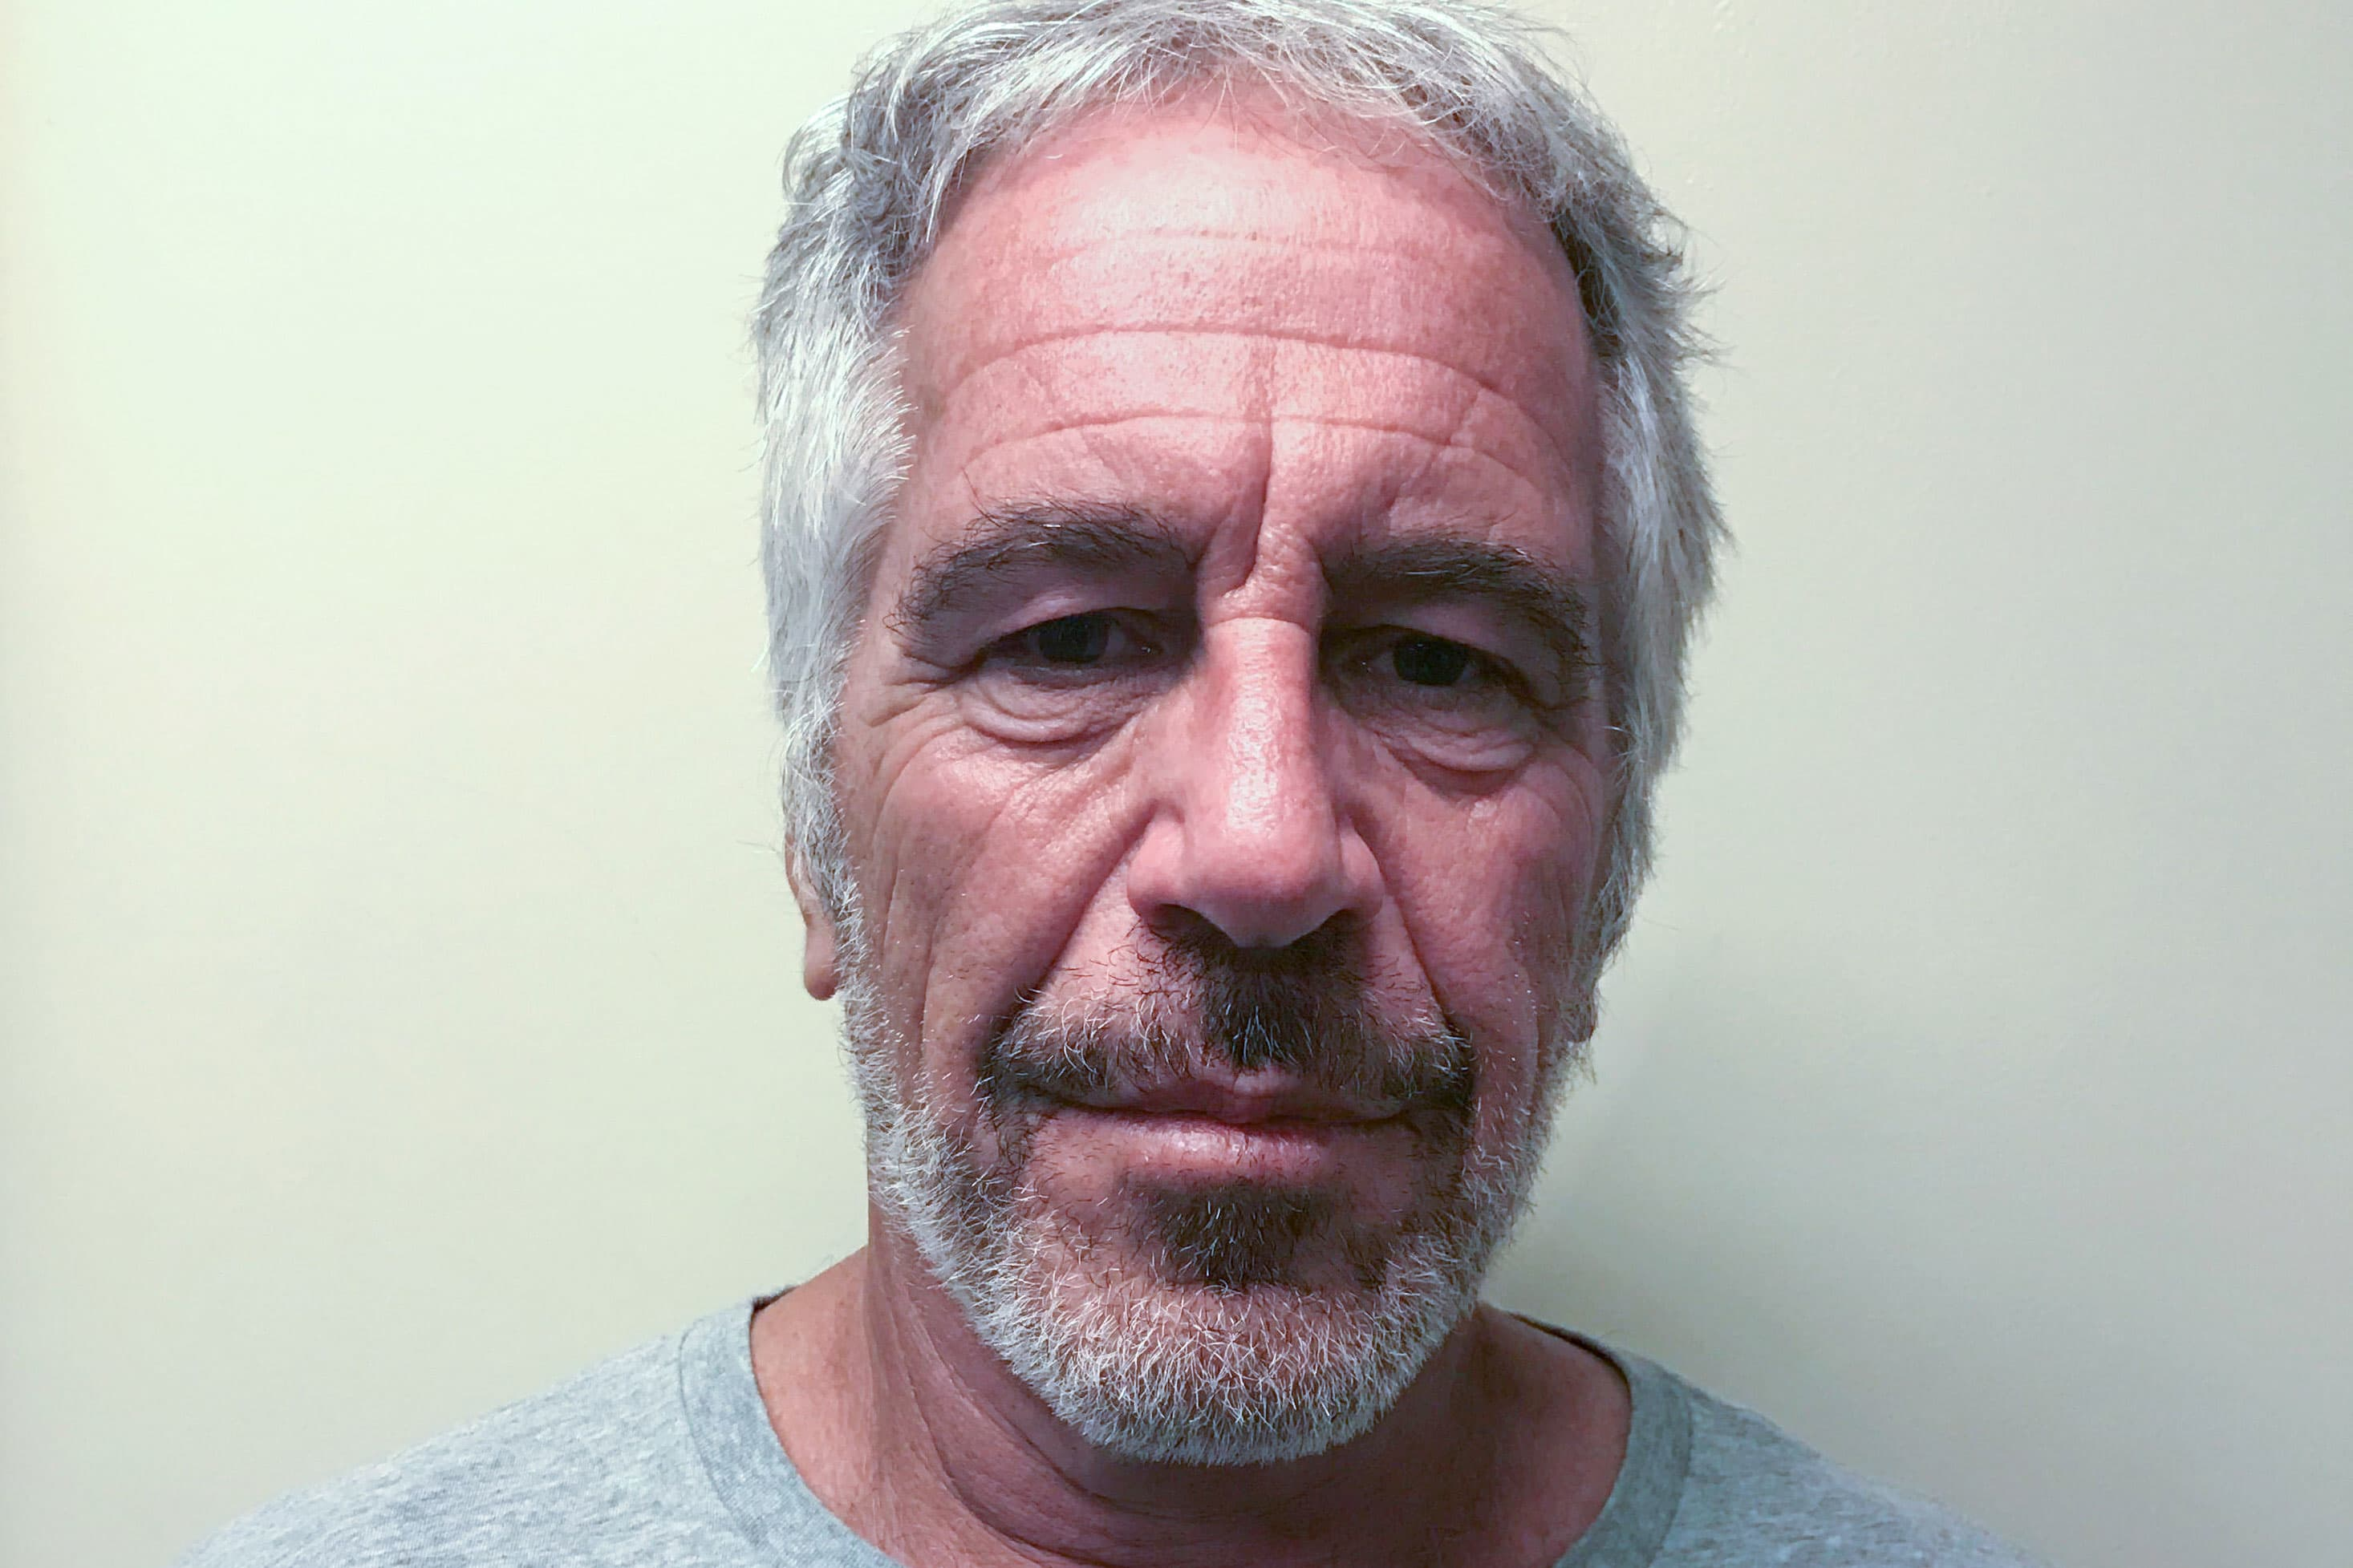 Jeffrey Epstein's ex-cellmate cleared after probe into earlier possible suicide attempt, lawyer says thumbnail